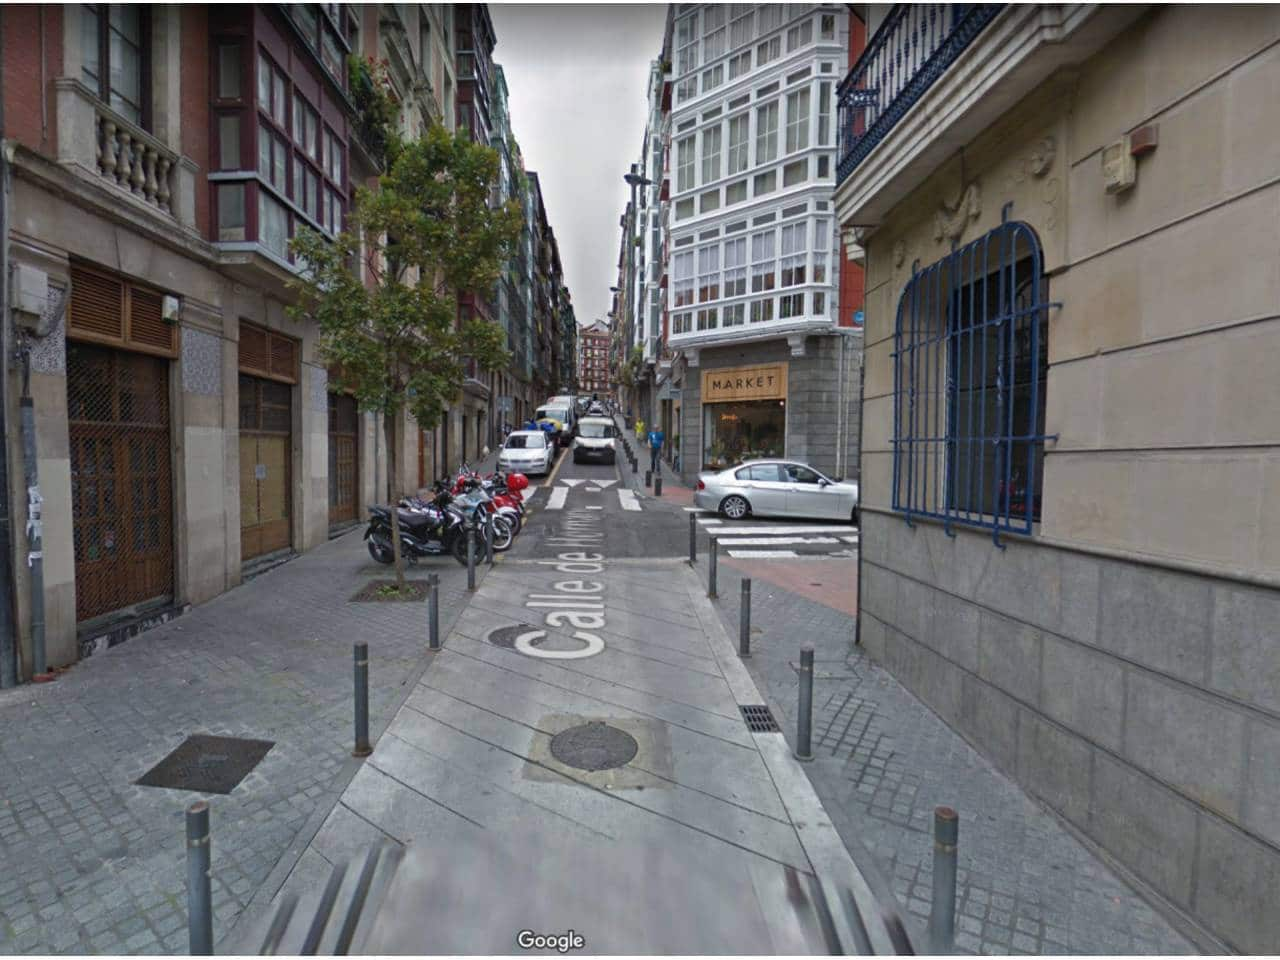 Local Commercial à vendre à Bilbao - 130 000 € (Ref: 4370415)